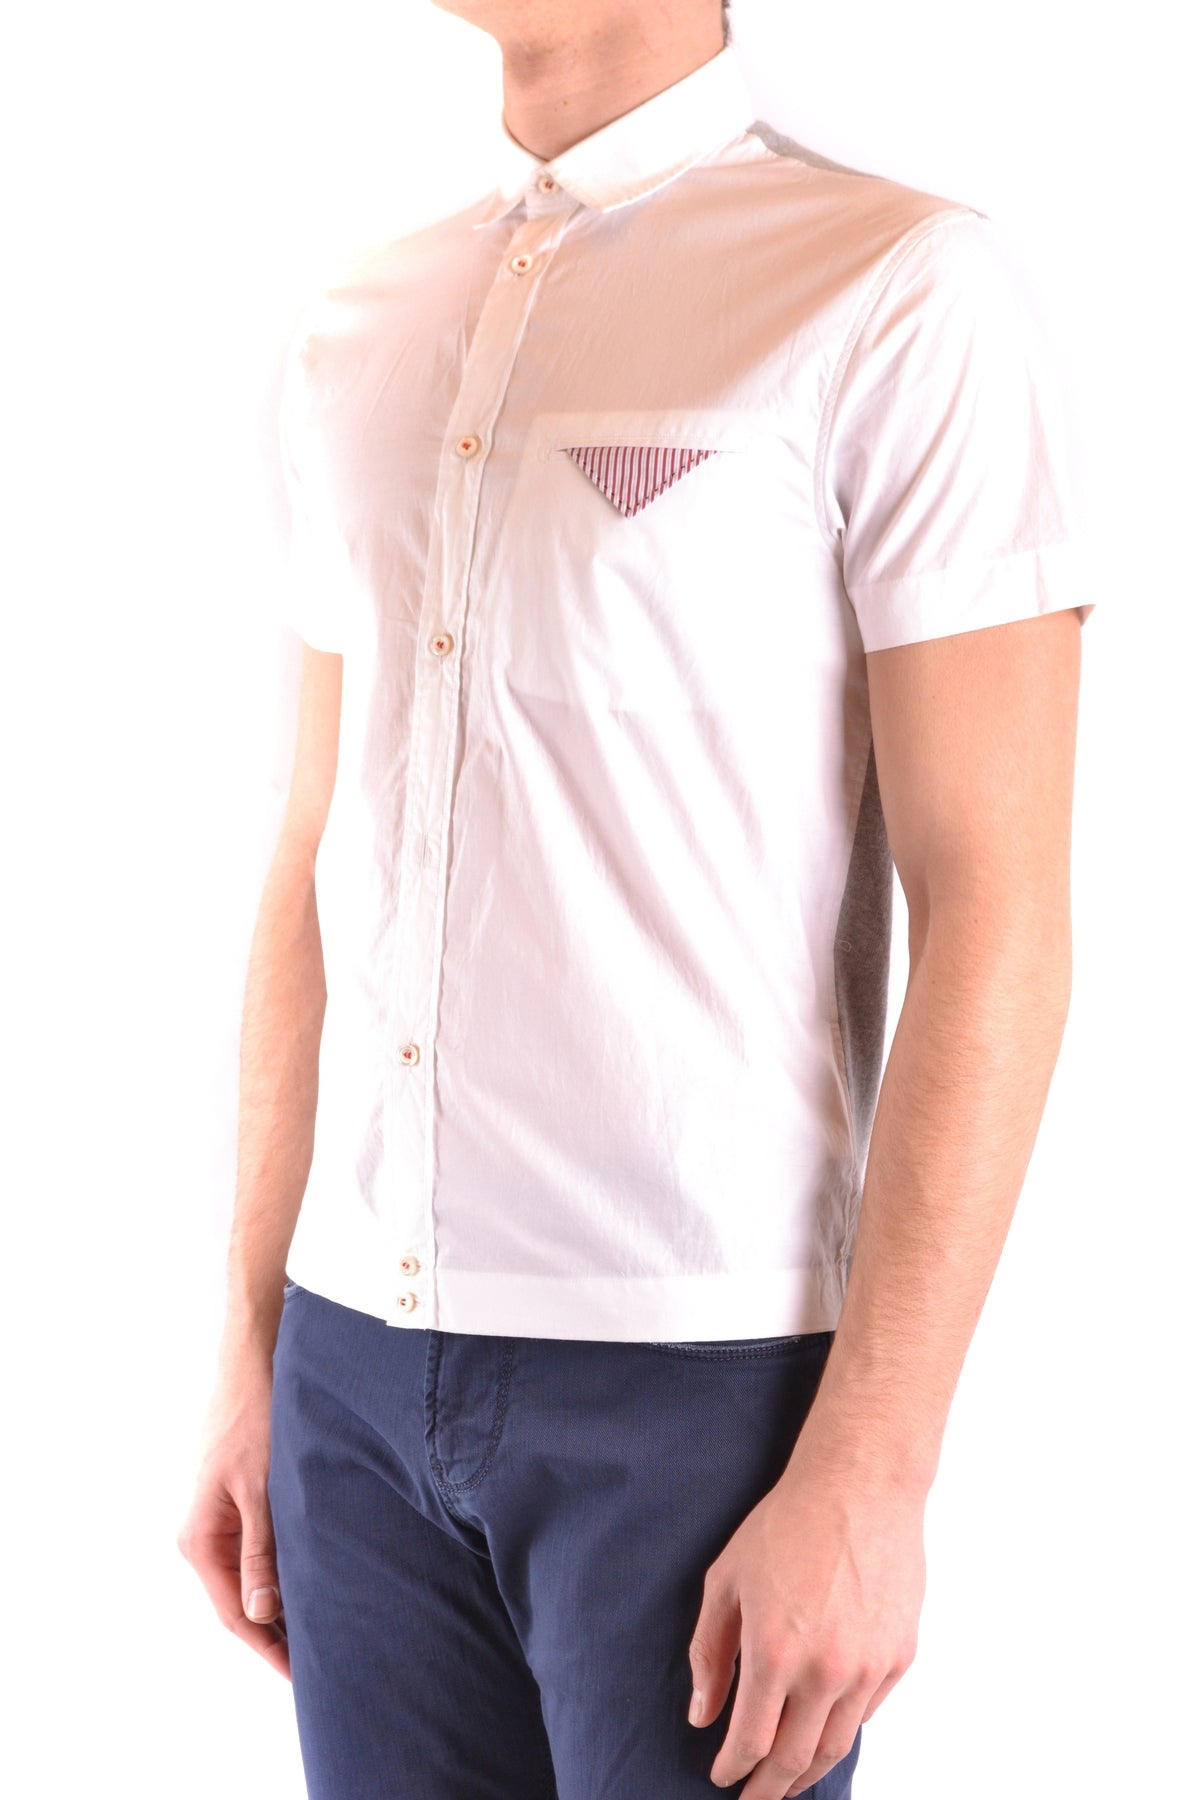 Shirt Dsquared-Shirts - MAN-Product Details Terms: New With LabelYear: 2018Main Color: WhiteGender: ManMade In: ItalyManufacturer Part Number: S744Dl0356Size: ItSeason: Spring / SummerClothing Type: CamiciaComposition: Cotton 100%-Keyomi-Sook